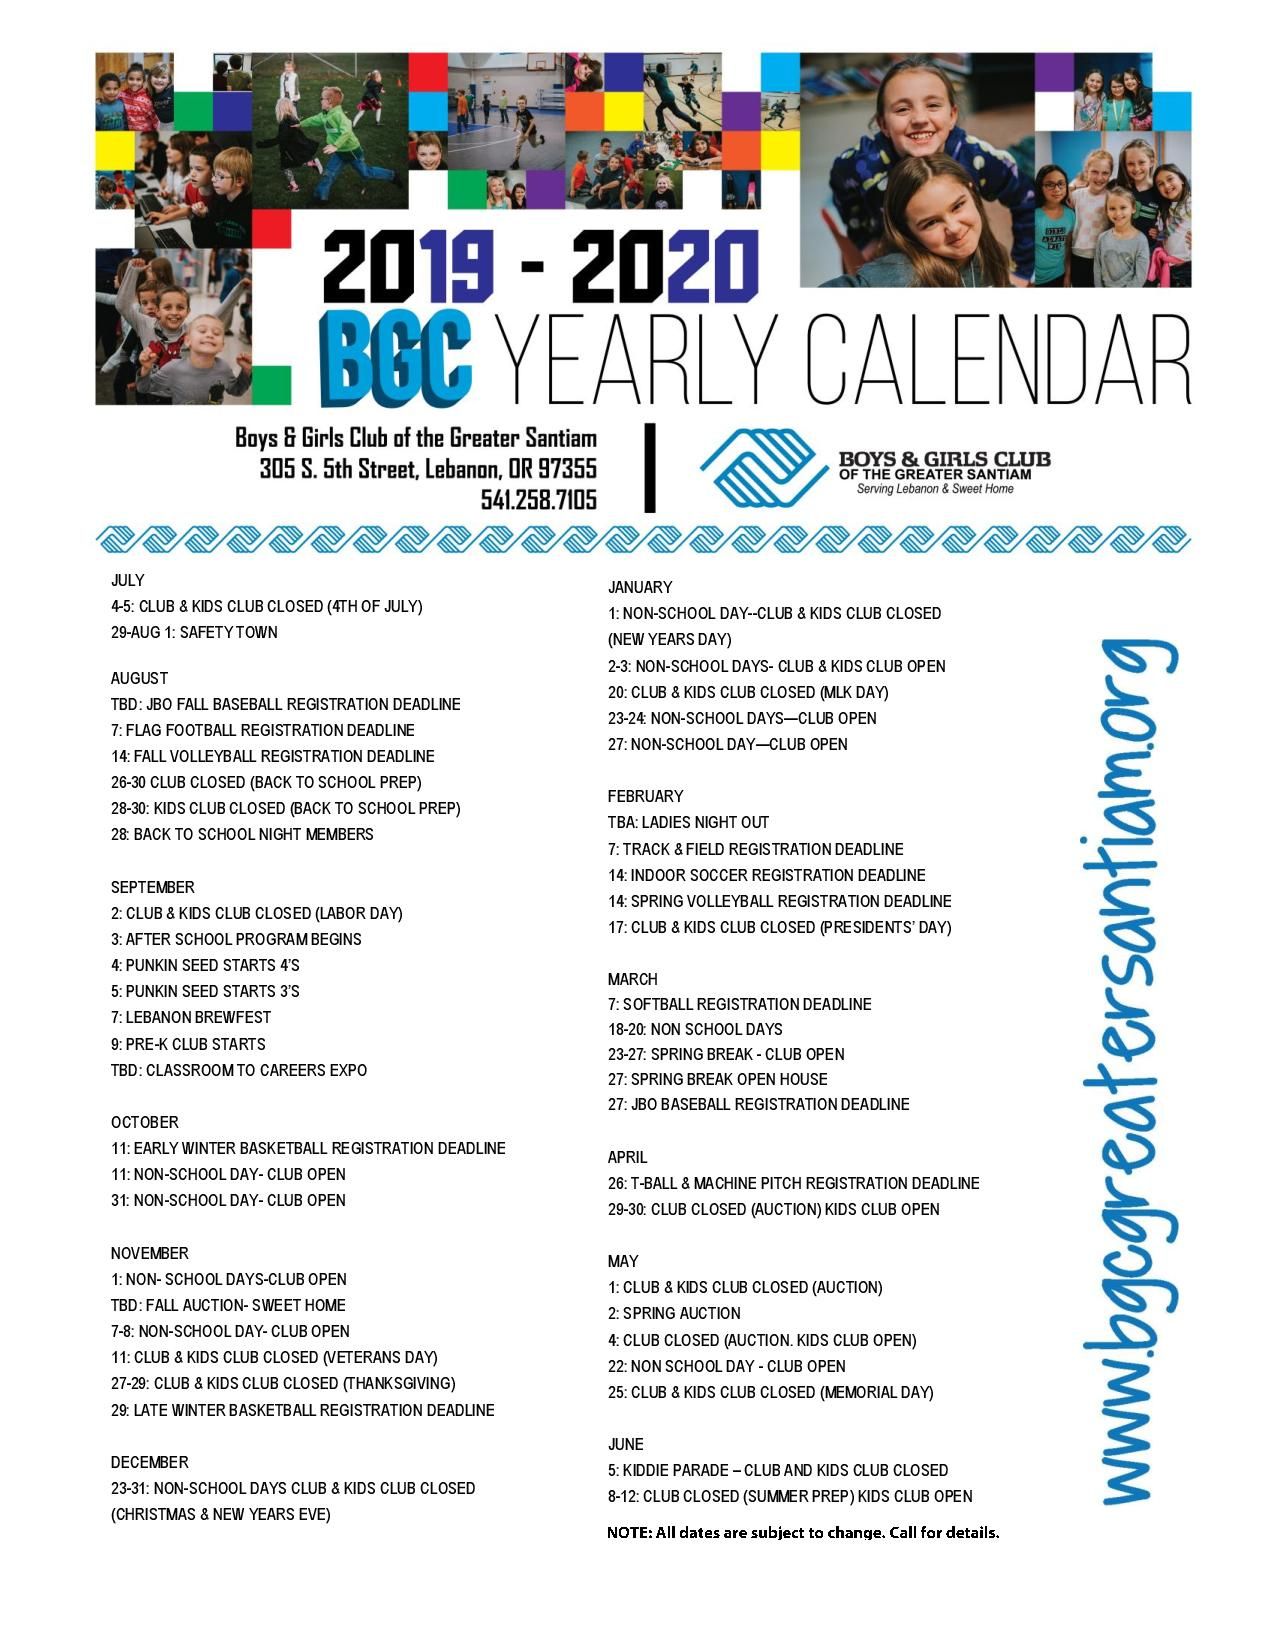 Boys & Girls Clubs Of The Greater Santiam : What We Do For Boys And Girls Club Program Program Calendar